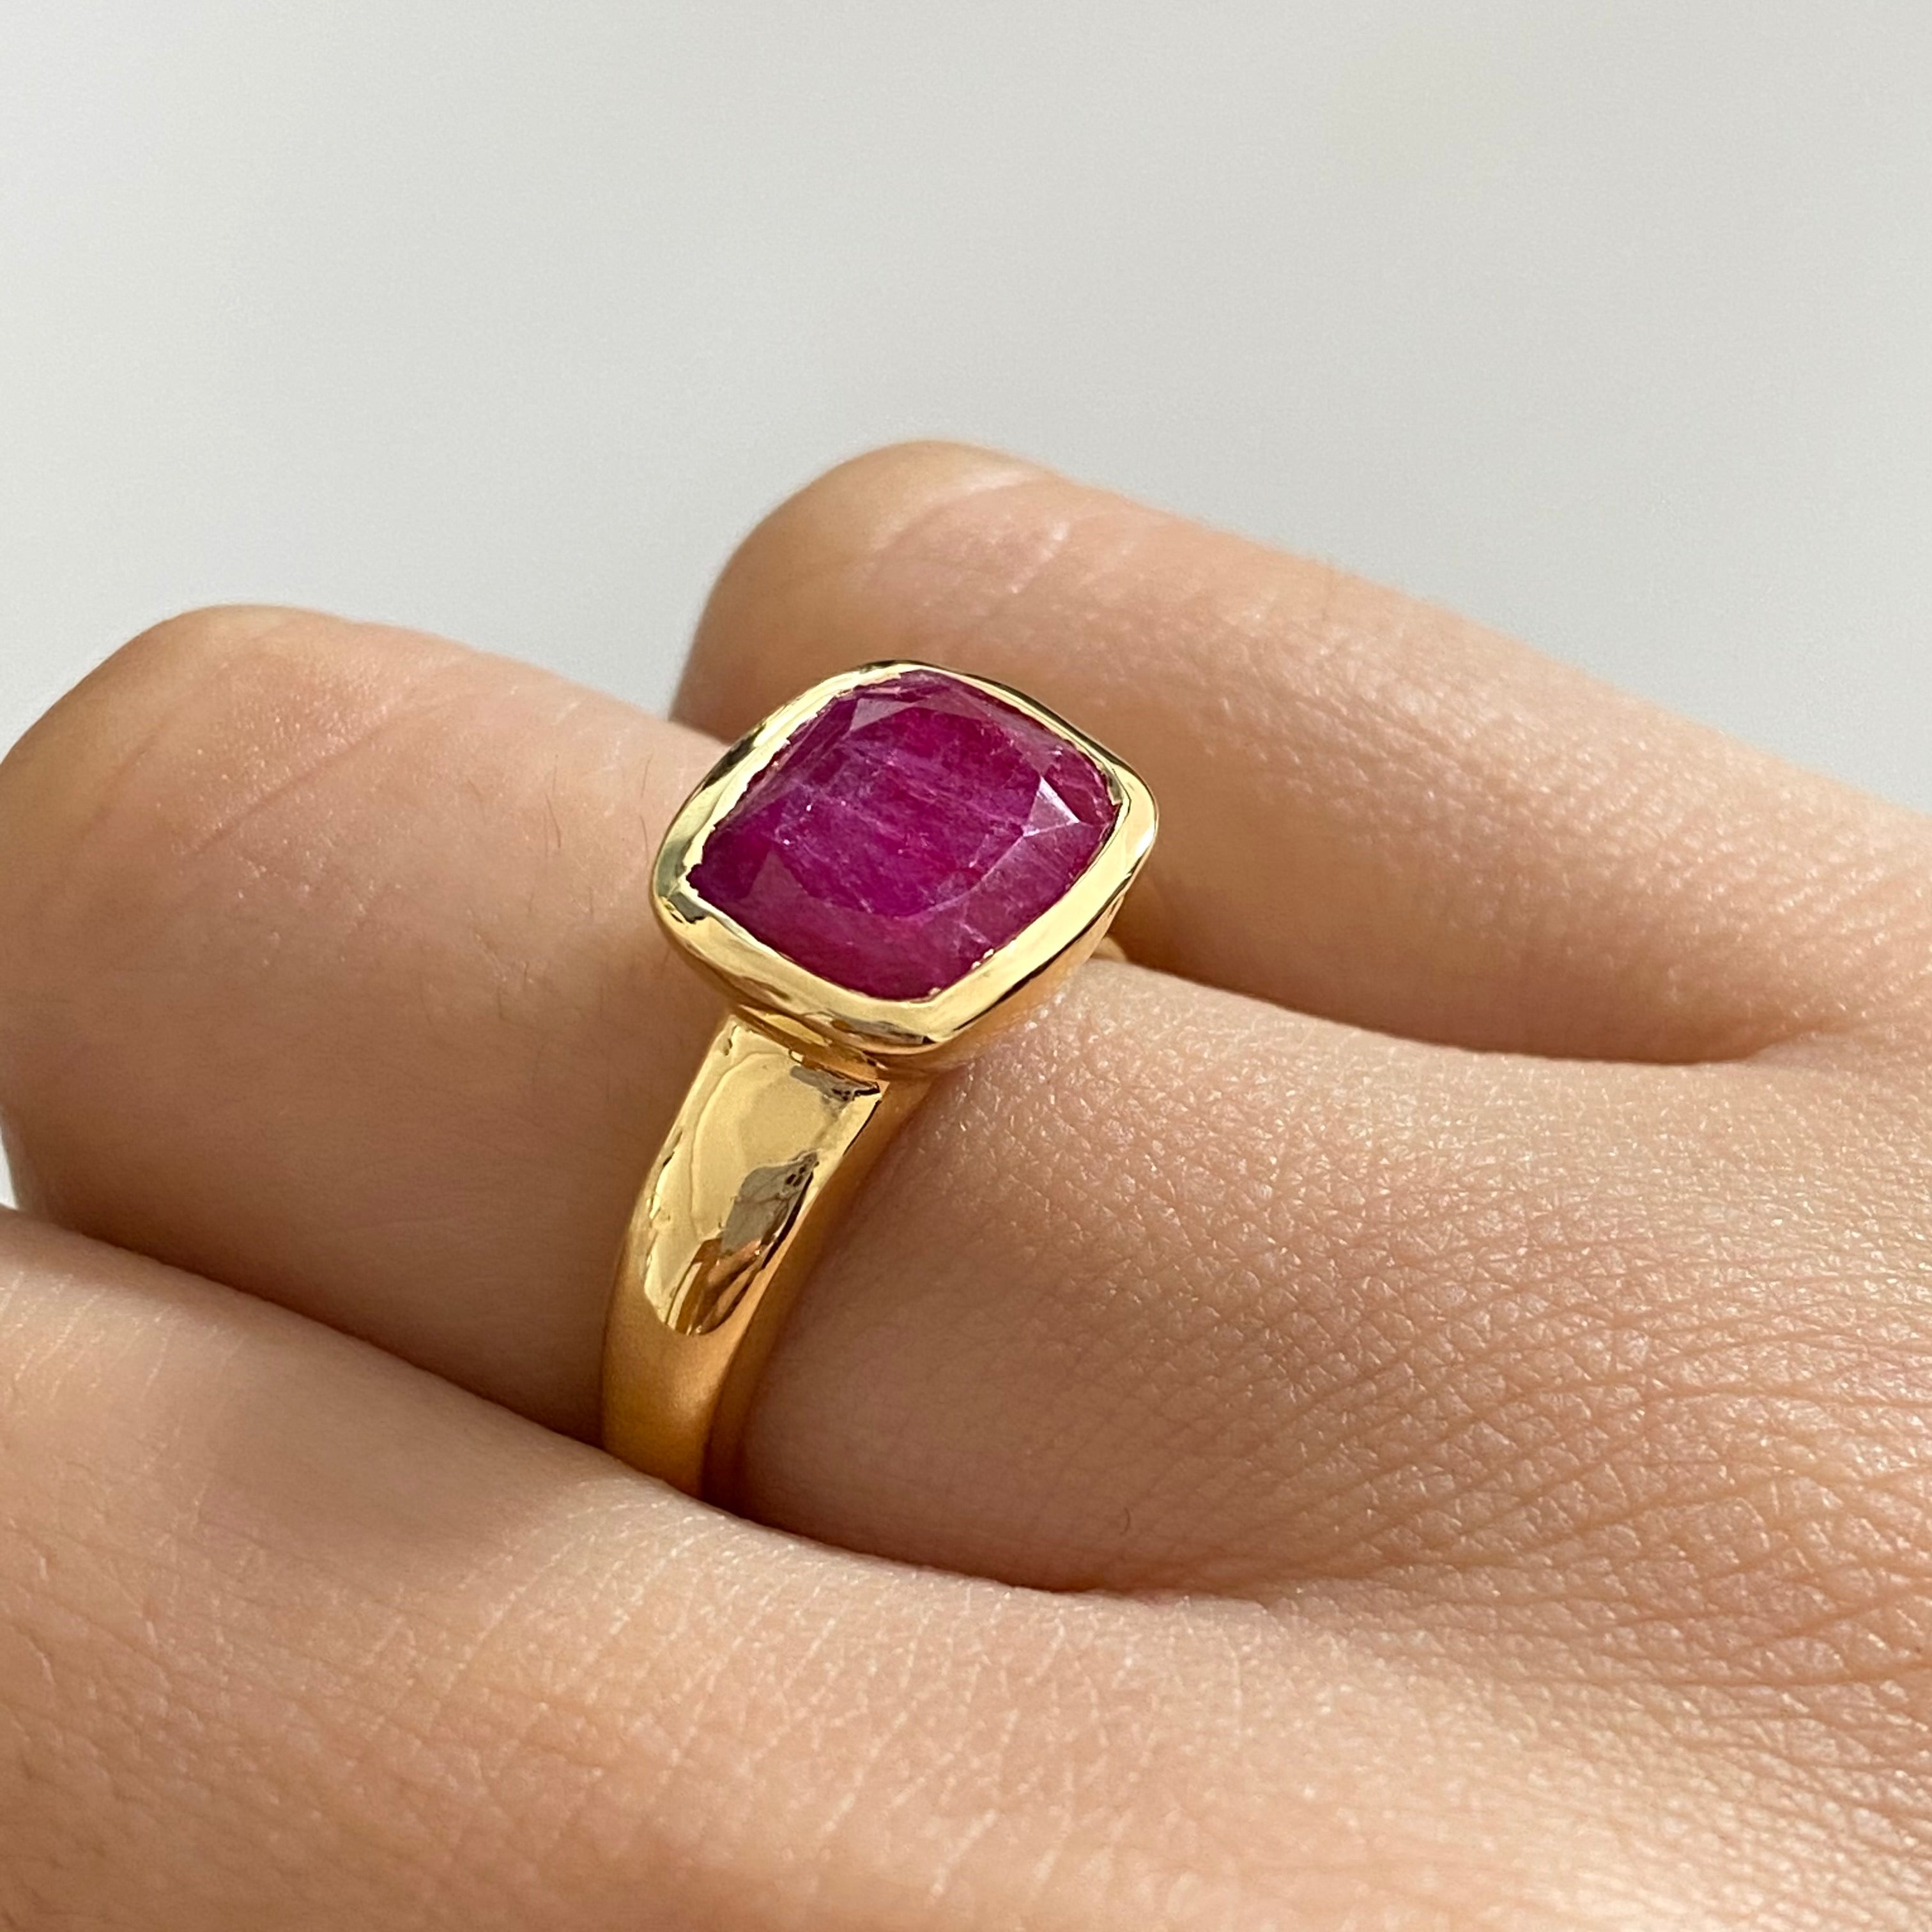 Faceted Rectangular Cut Natural Gemstone Gold Plated Sterling Silver Ring - Ruby Quartz